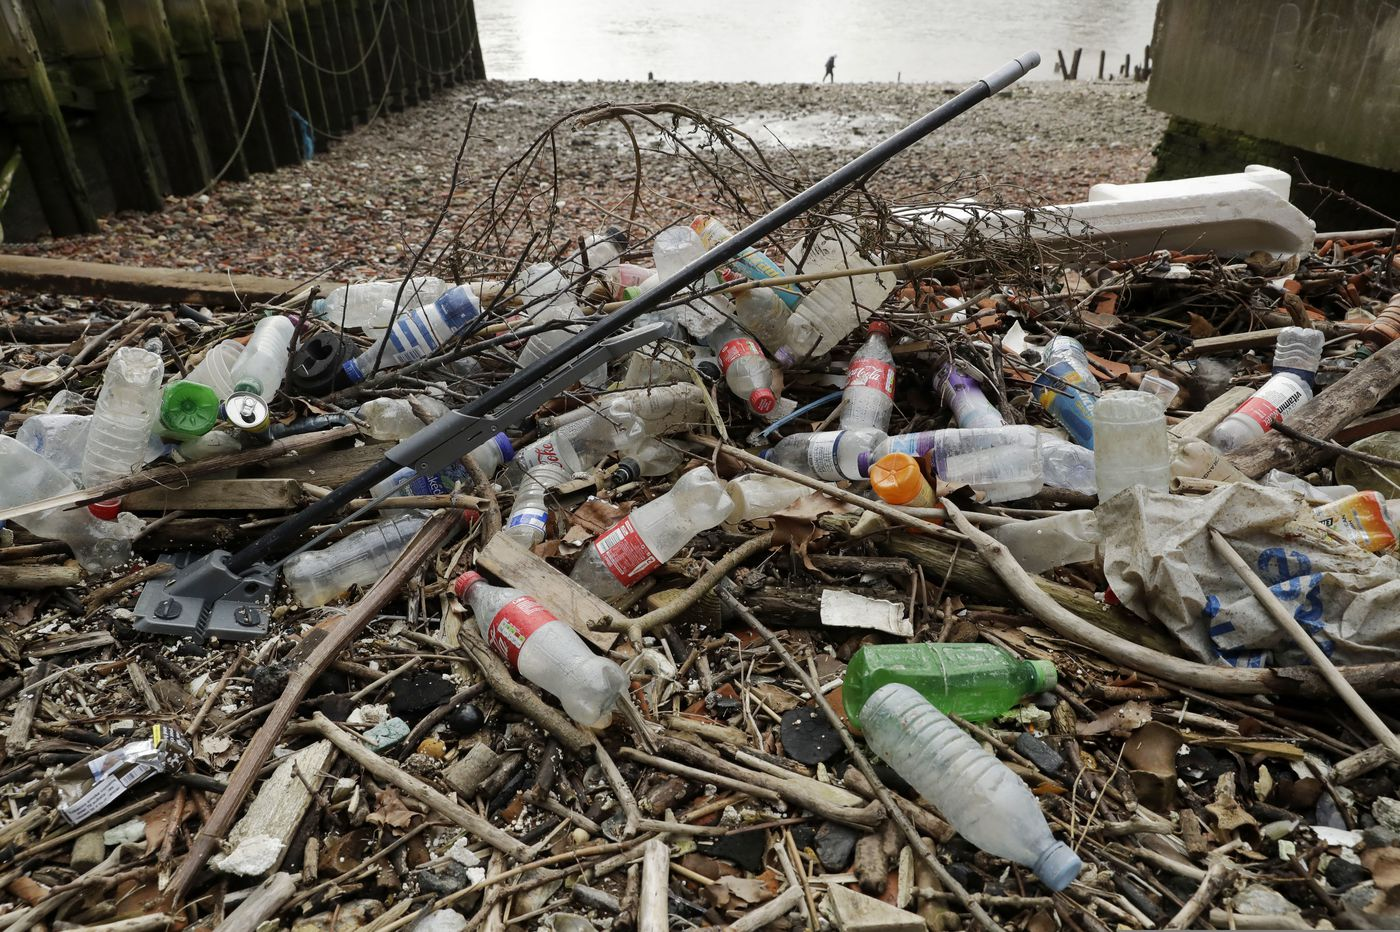 European officials agree on ban of some single-use plastics